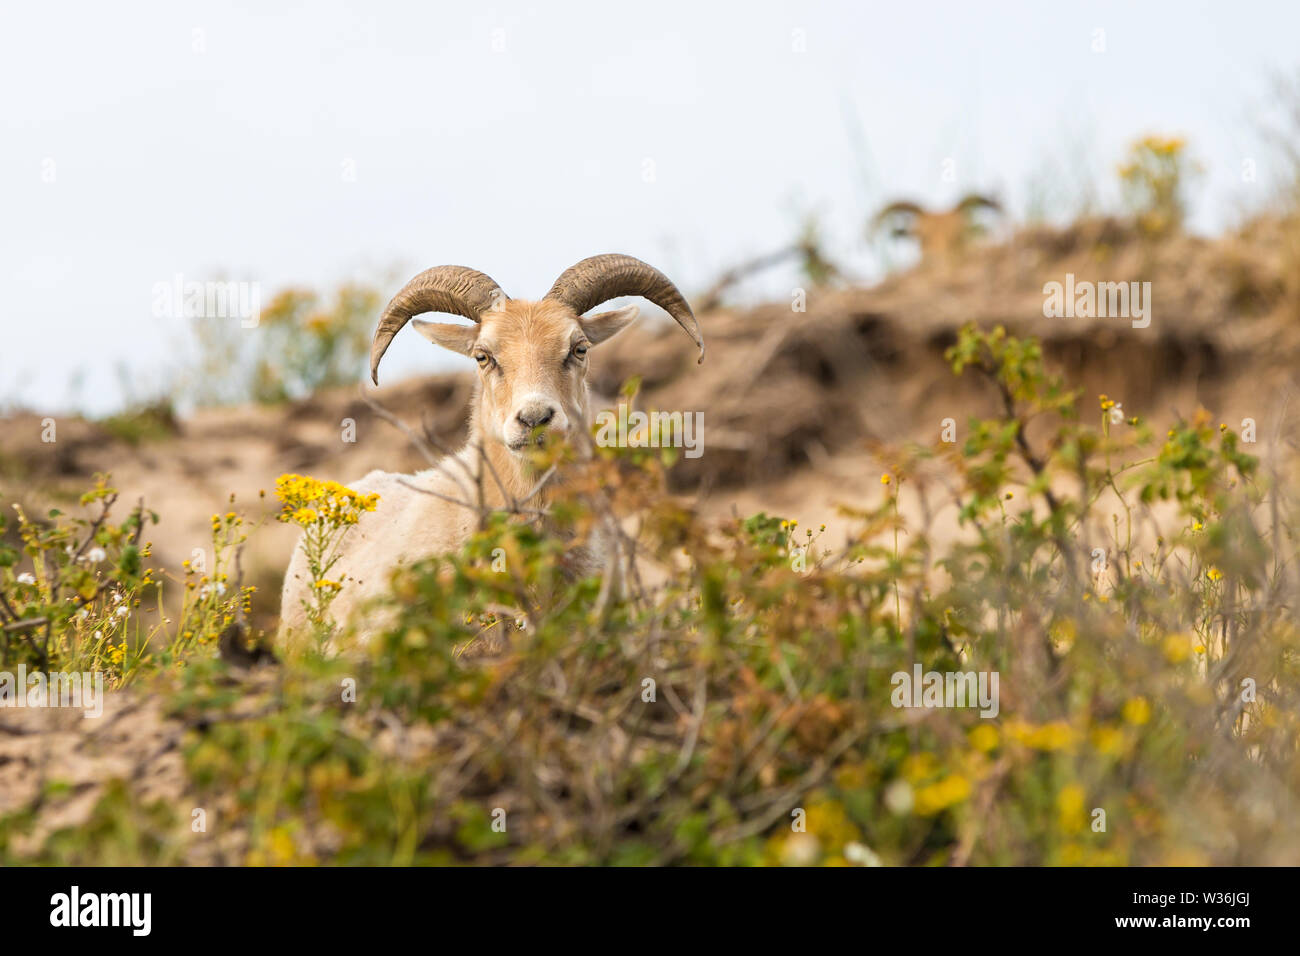 ancient free range drenth heath sheep grazing in the dunes of The Hague's westduinpark natura 2000 coastal park - Stock Image